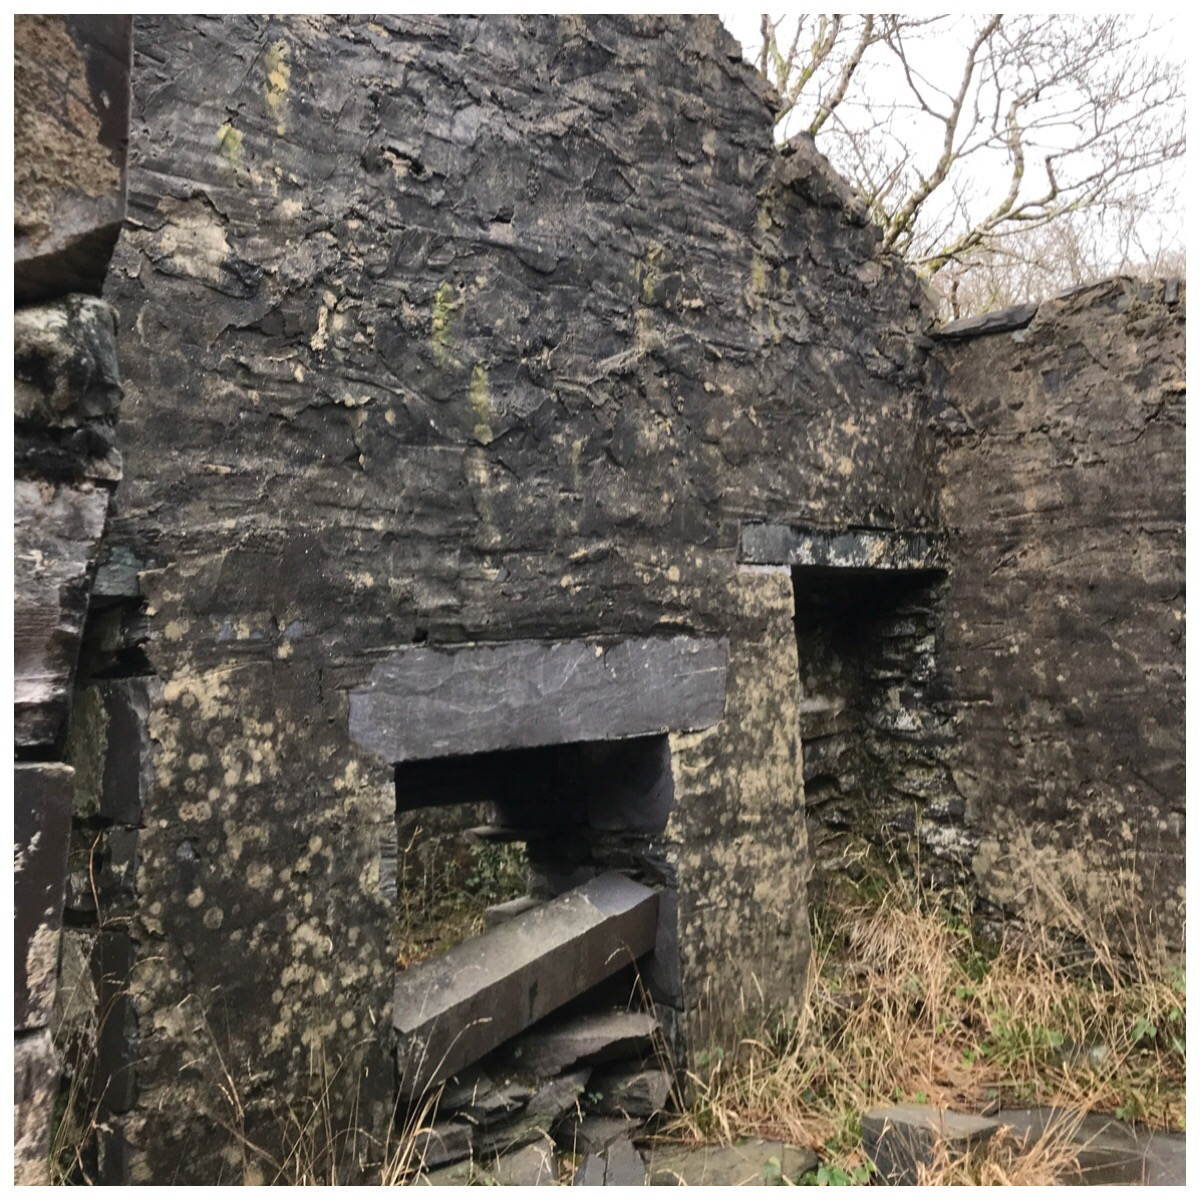 One of the rooms in the ruins of the Anglesey Barracks.